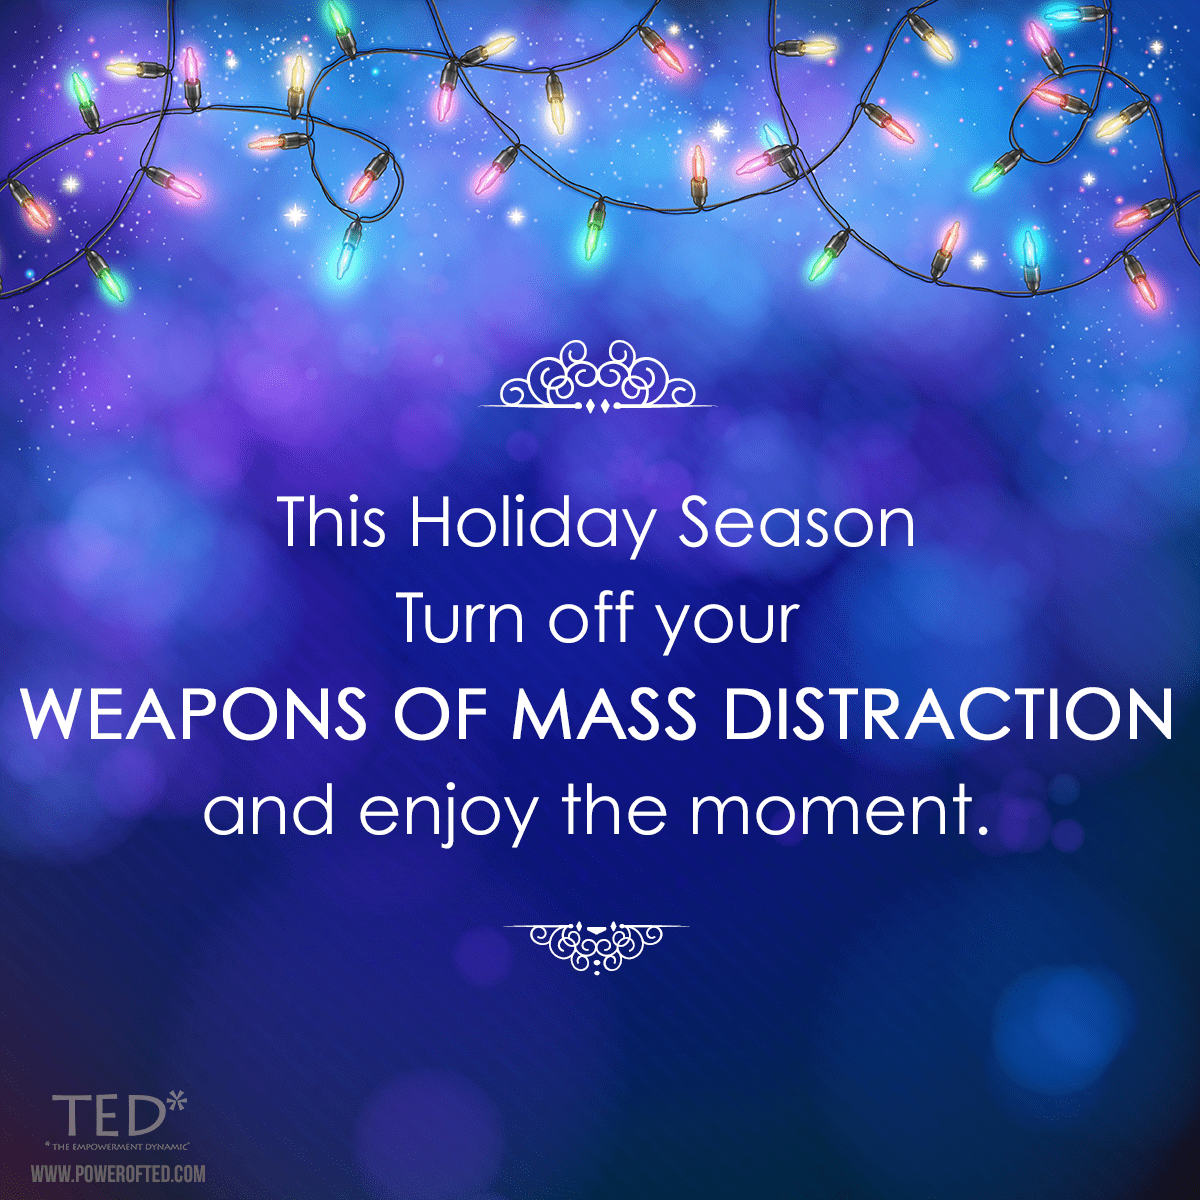 Holiday Lights over blue background: This Holiday Season turn off your weapons of mass distraction and enjoy the moment.